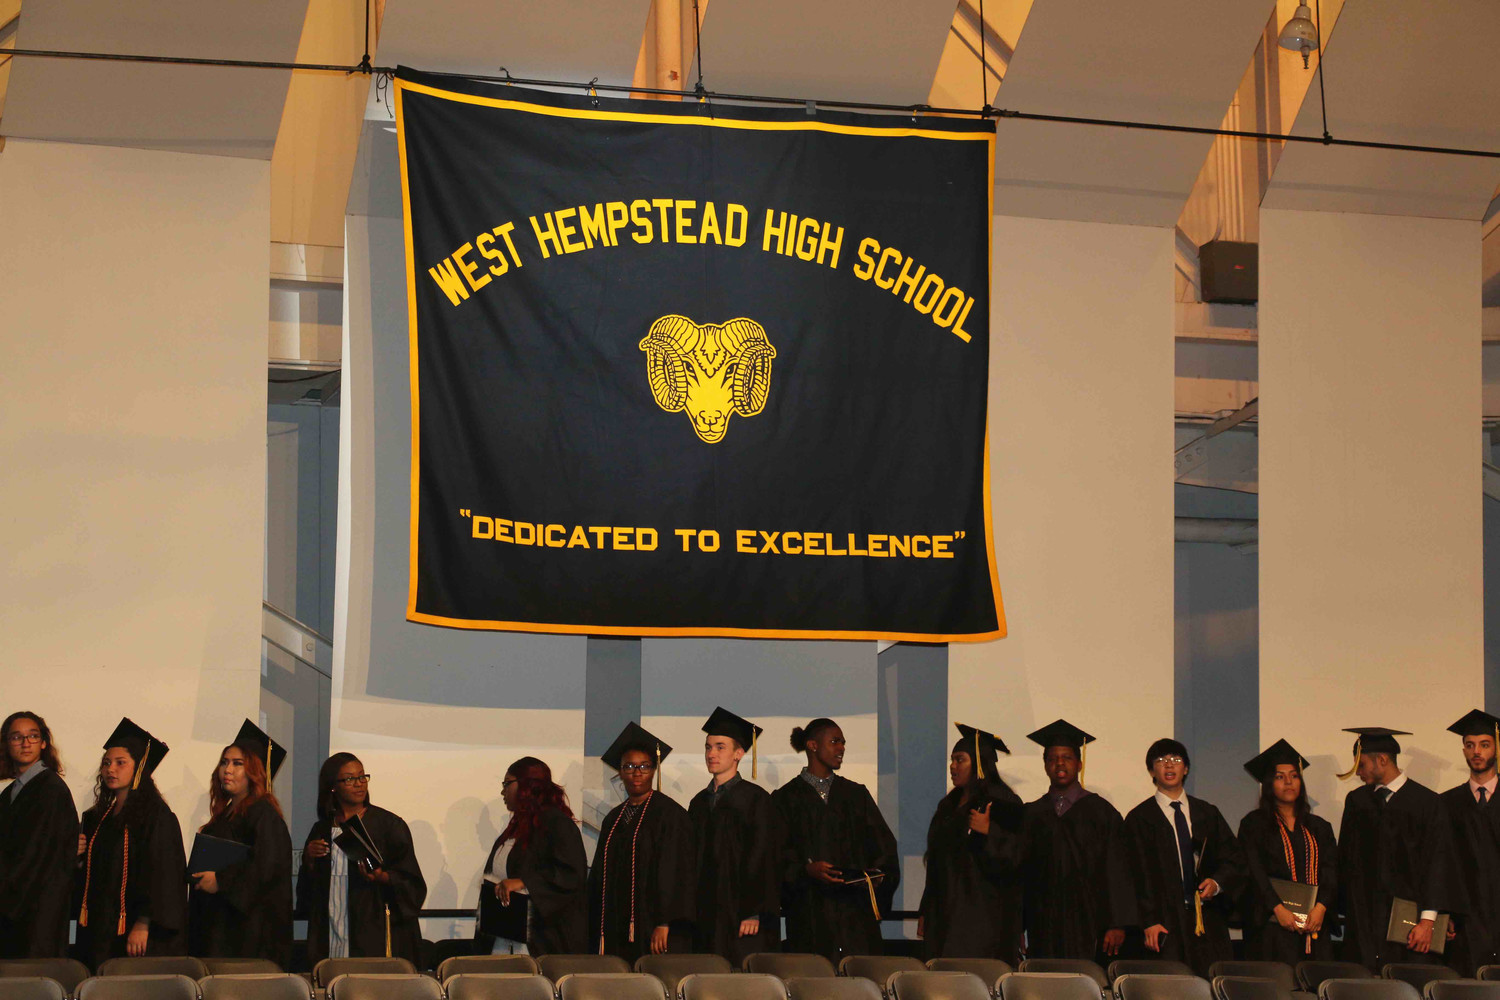 Living up to their motto, W.H. High School's class of 2018 is dedicated to excellence.